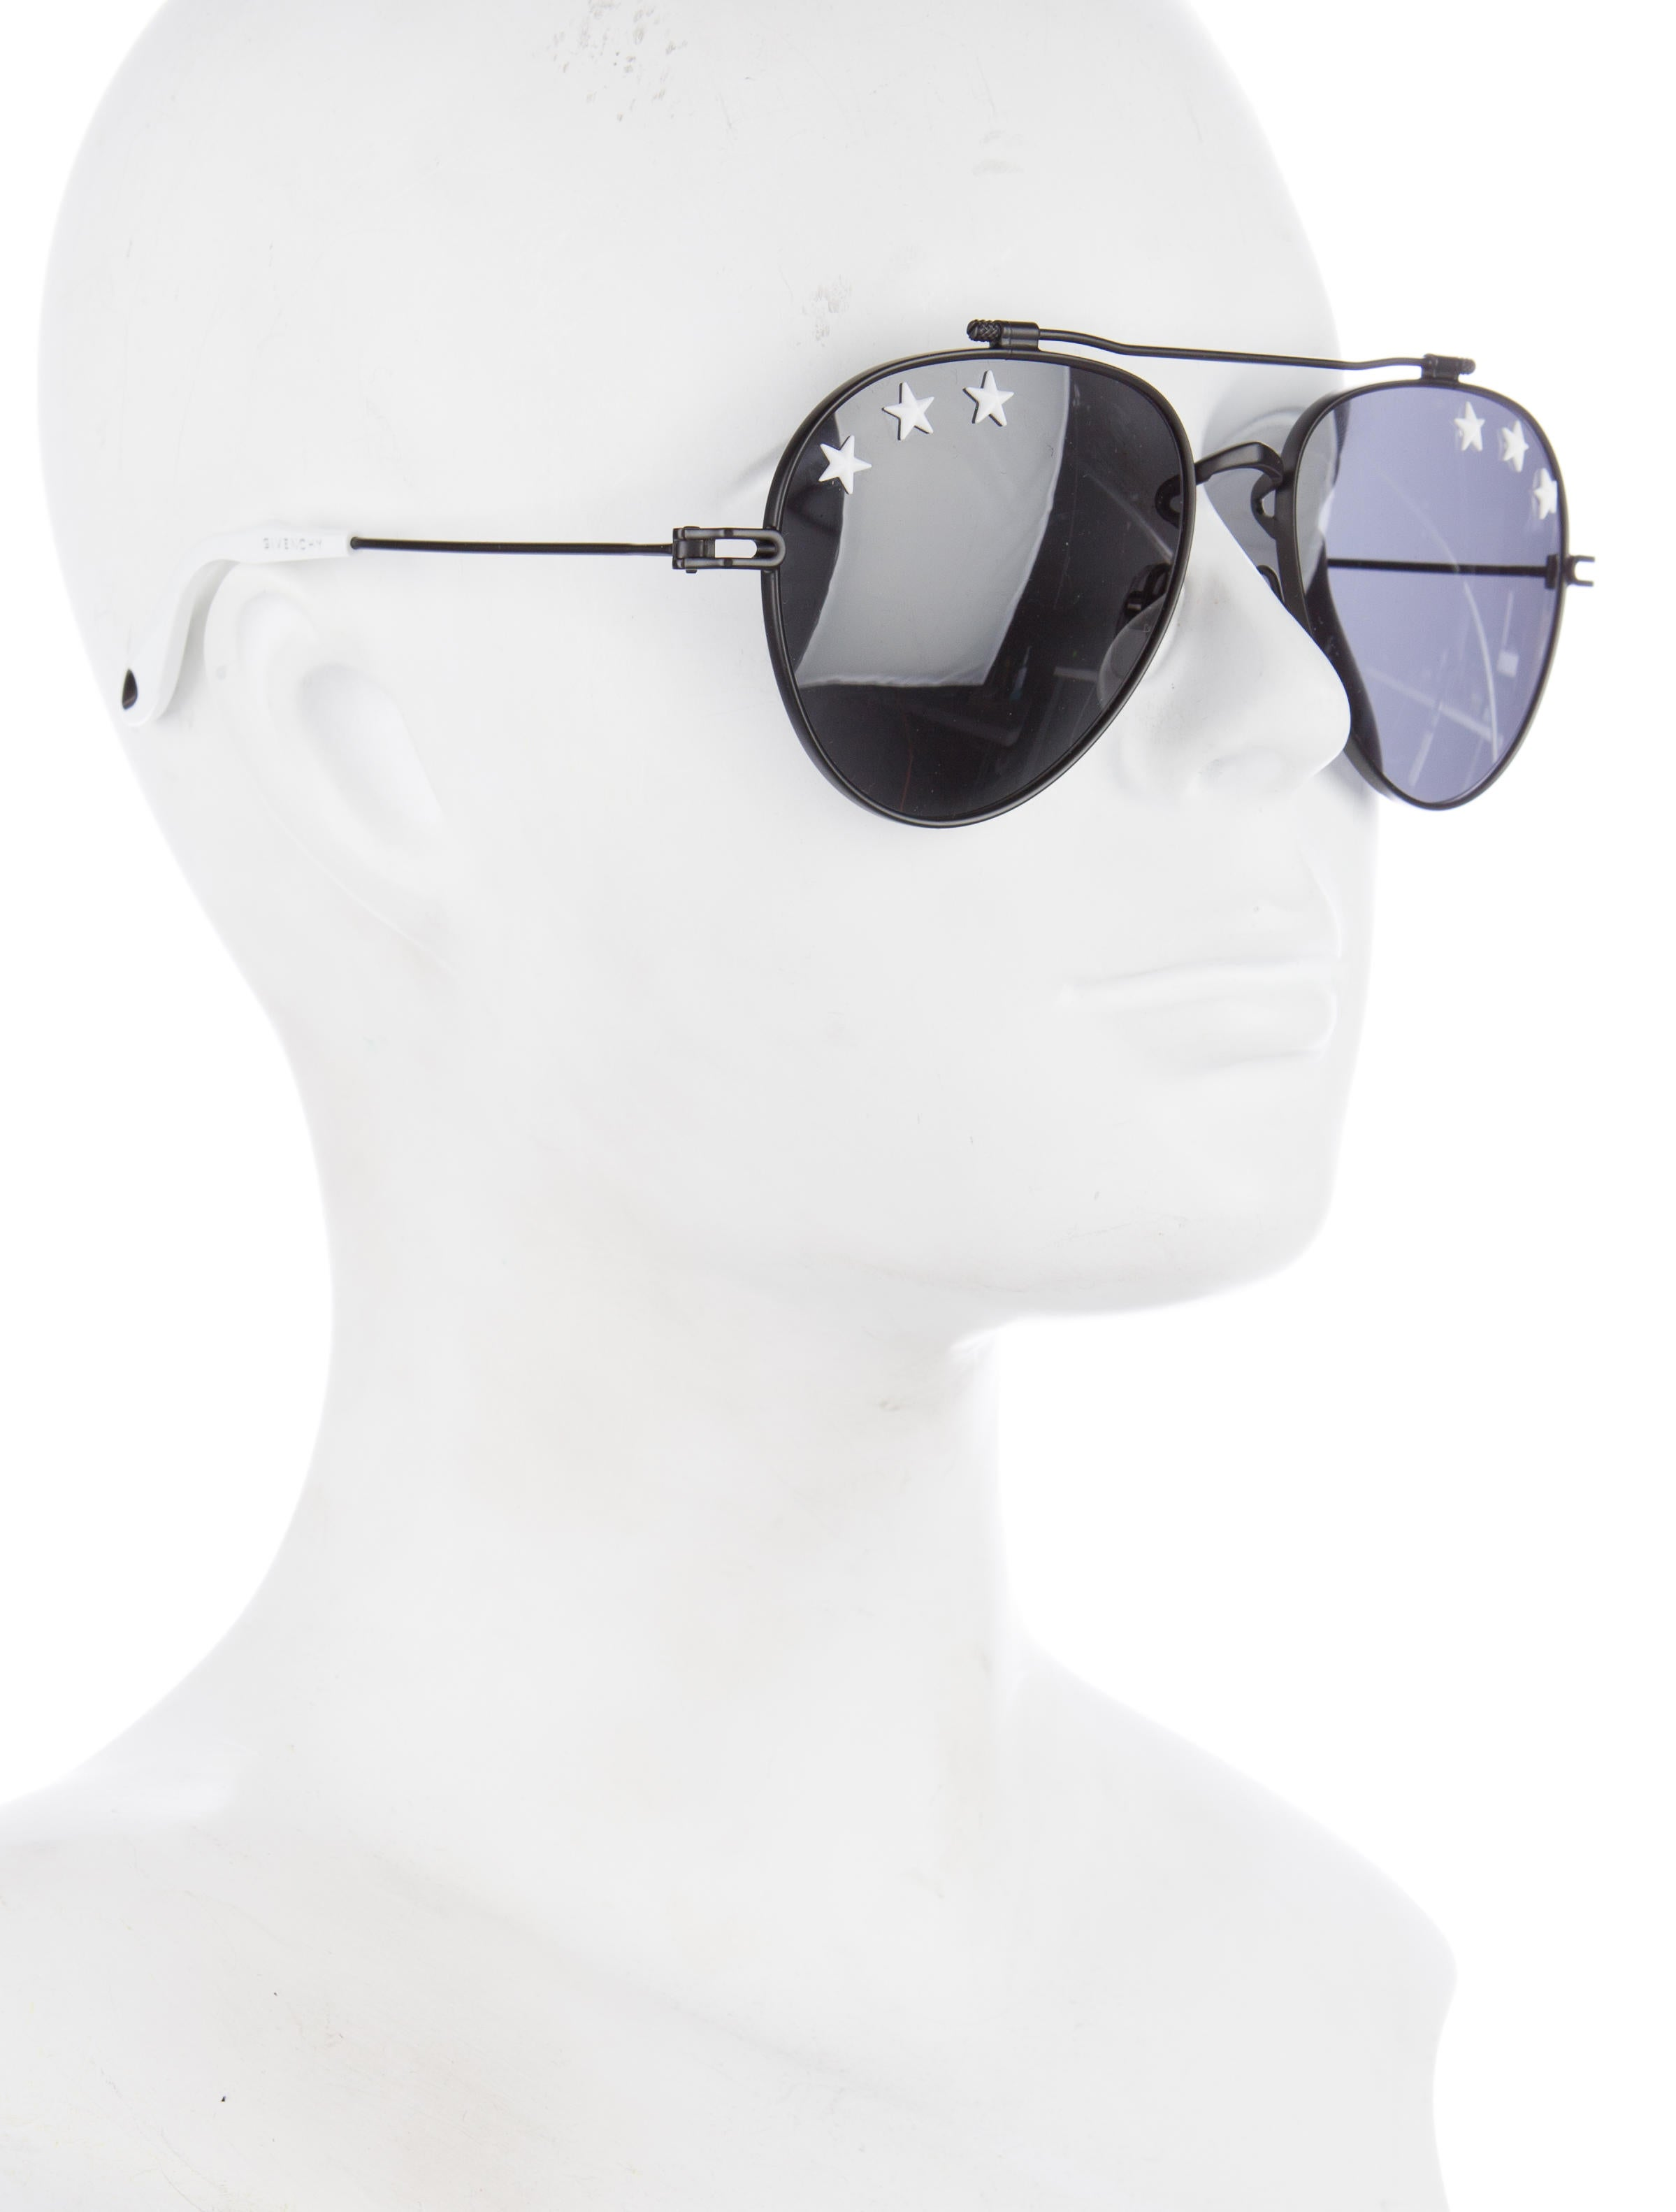 938423da7d Givenchy Star Studded Aviator Sunglasses - Accessories - GIV37510